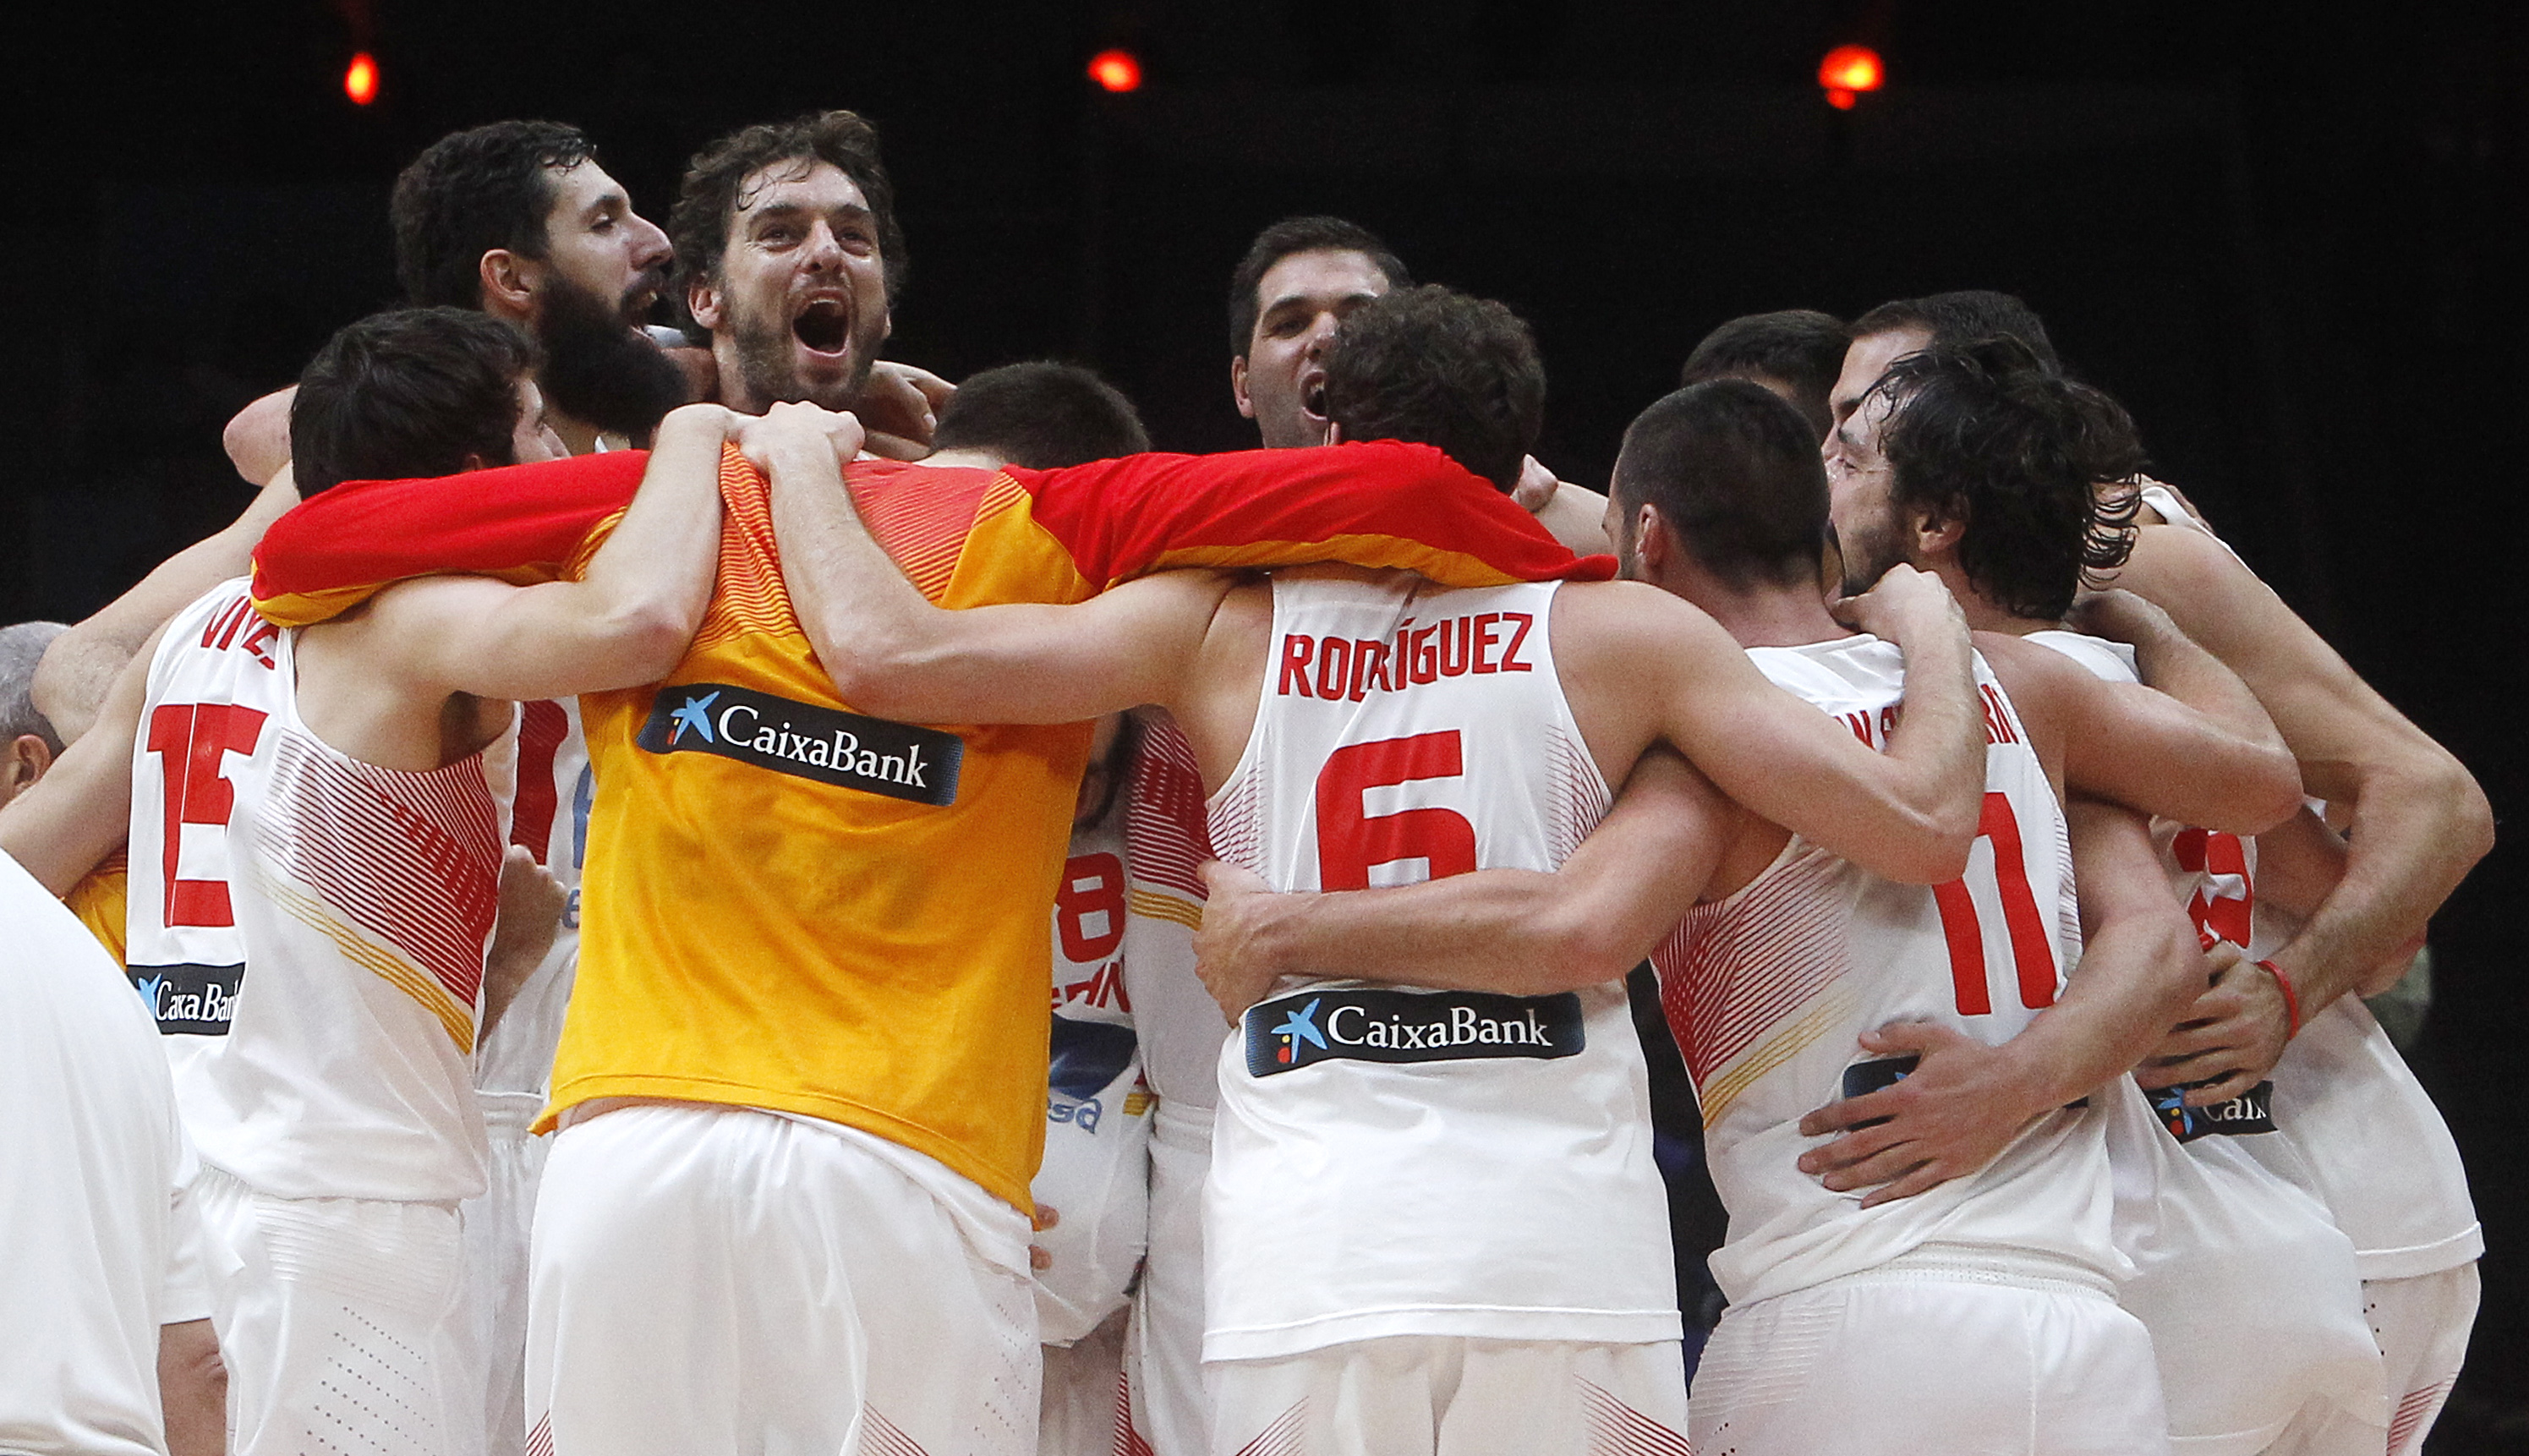 Spain' s Pau Gasol, third left, celebrates with teammates after winning the Eurobasket European Championship final between Spain and Lithuania in Lille, northern France, Sunday, Sept. 20, 2015. Spain beats Lithuania 80-63 to take Eurobasket gold medal.  (